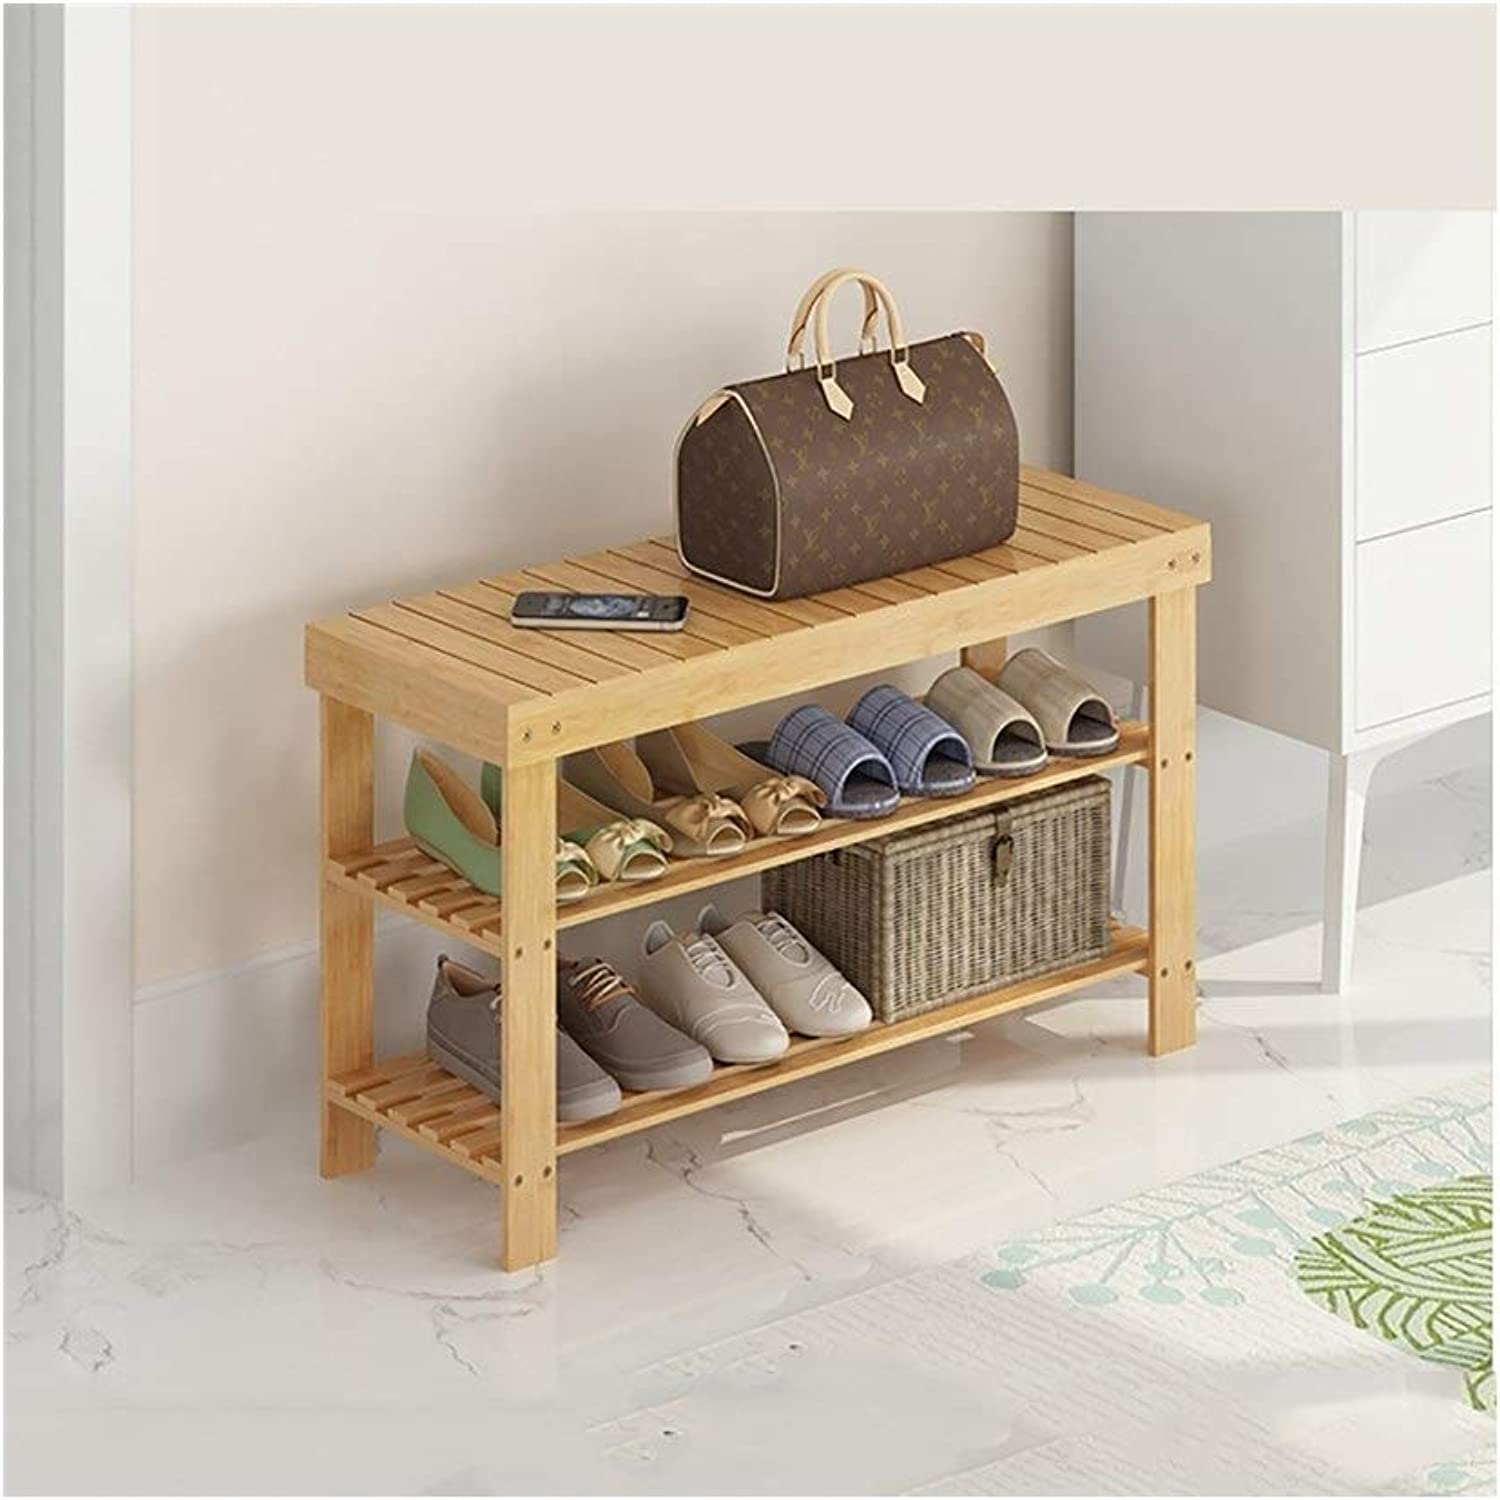 shoes Rack Organizer Storage, Solid Wood shoes Bench, Entrance Door Stool, shoes Bench, shoes Rack. (Size   80  28  45CM)